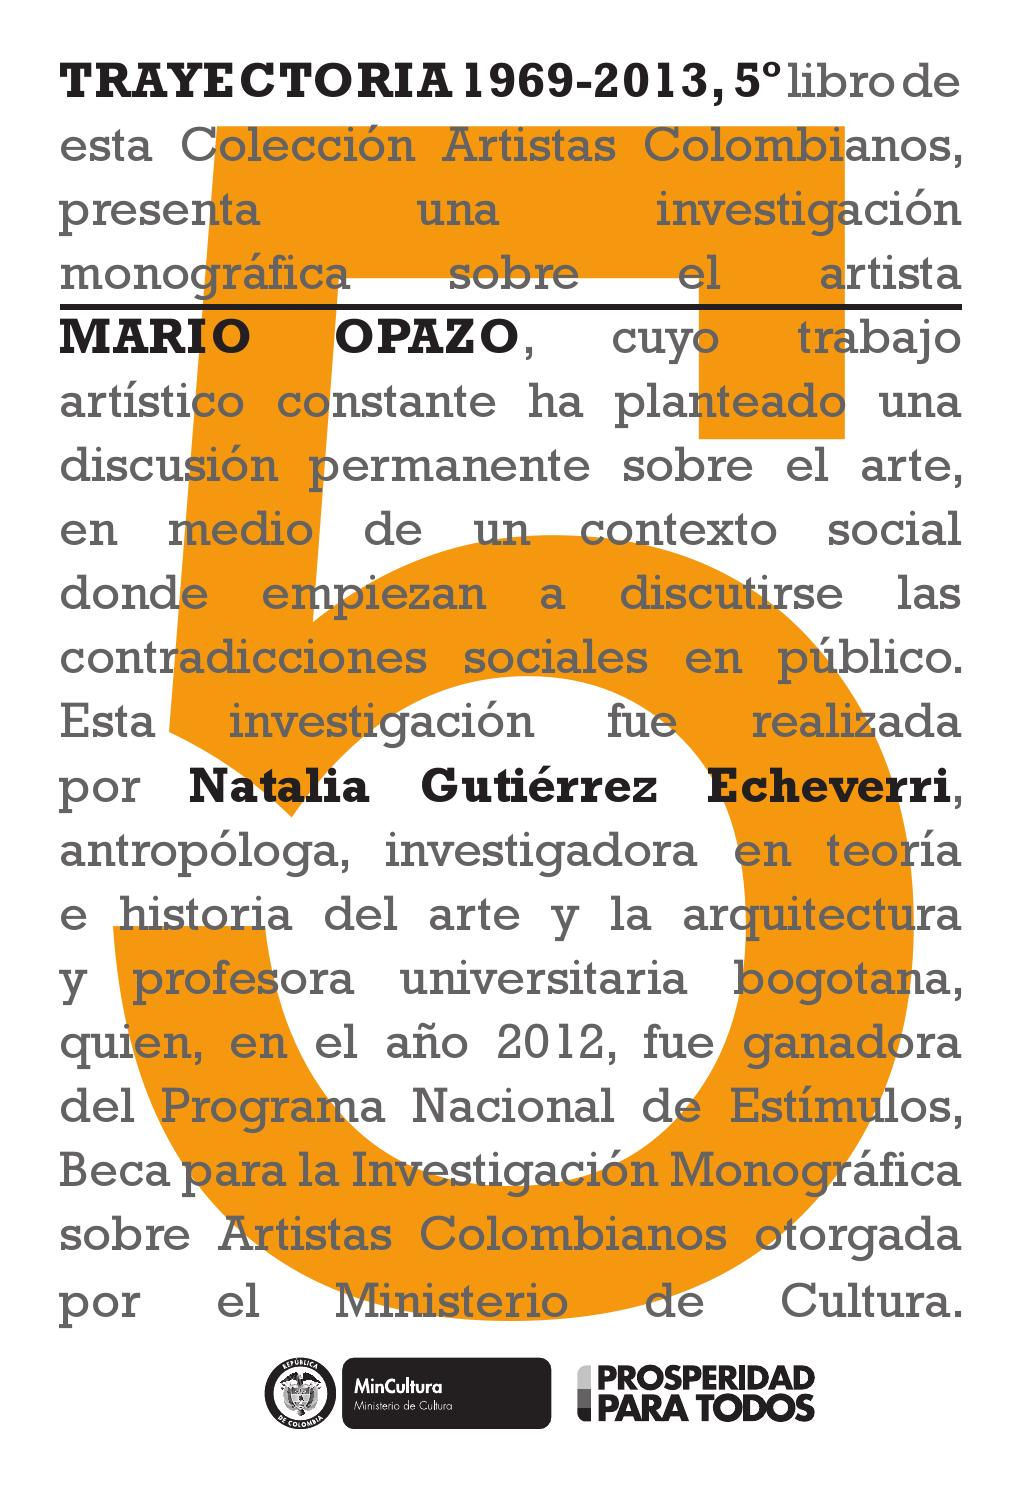 Trayectoria 1969-2013 by Artes Visuales Mincultura - issuu